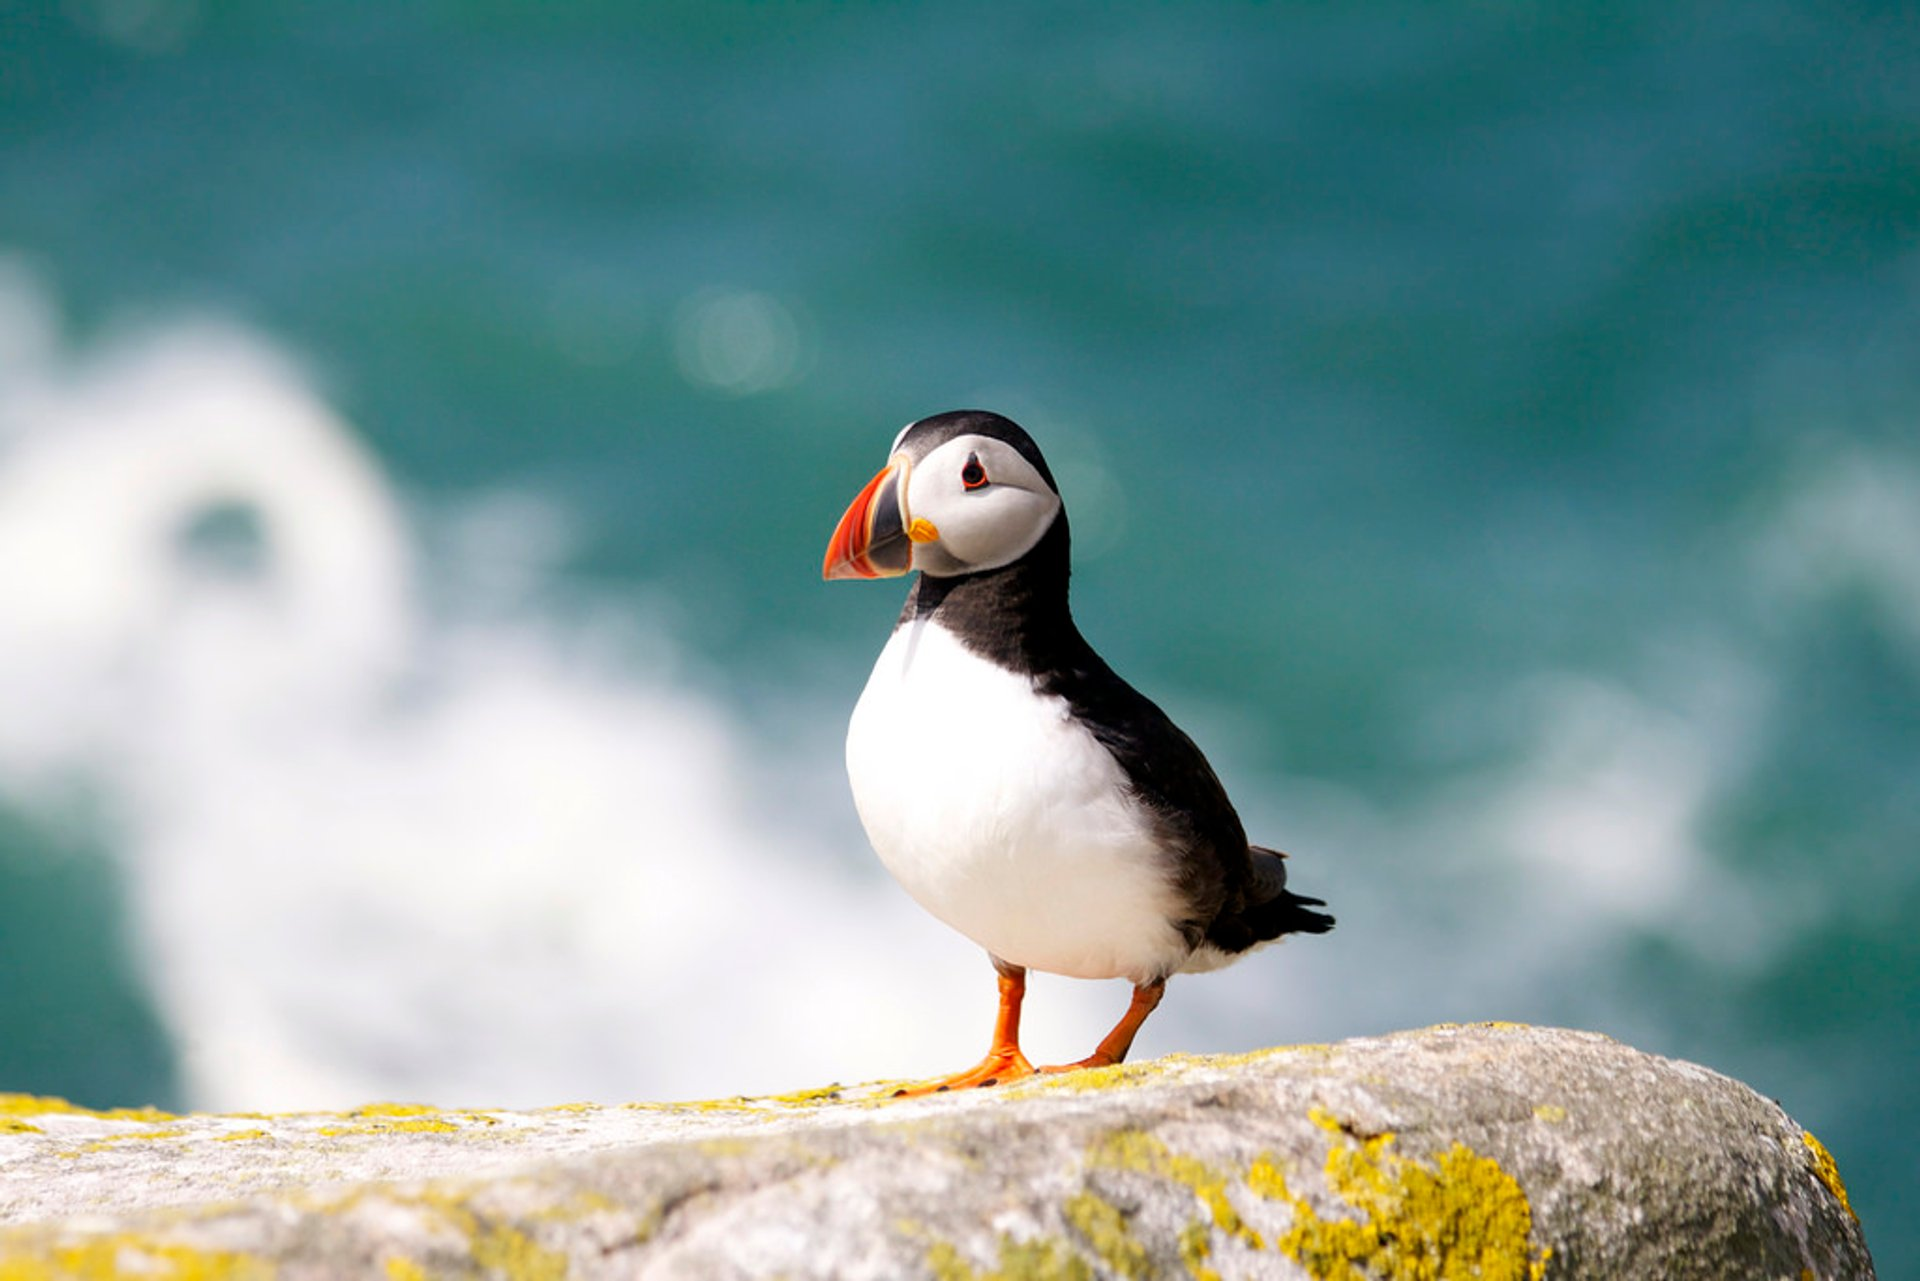 Watching Puffins in Ireland 2020 - Best Time